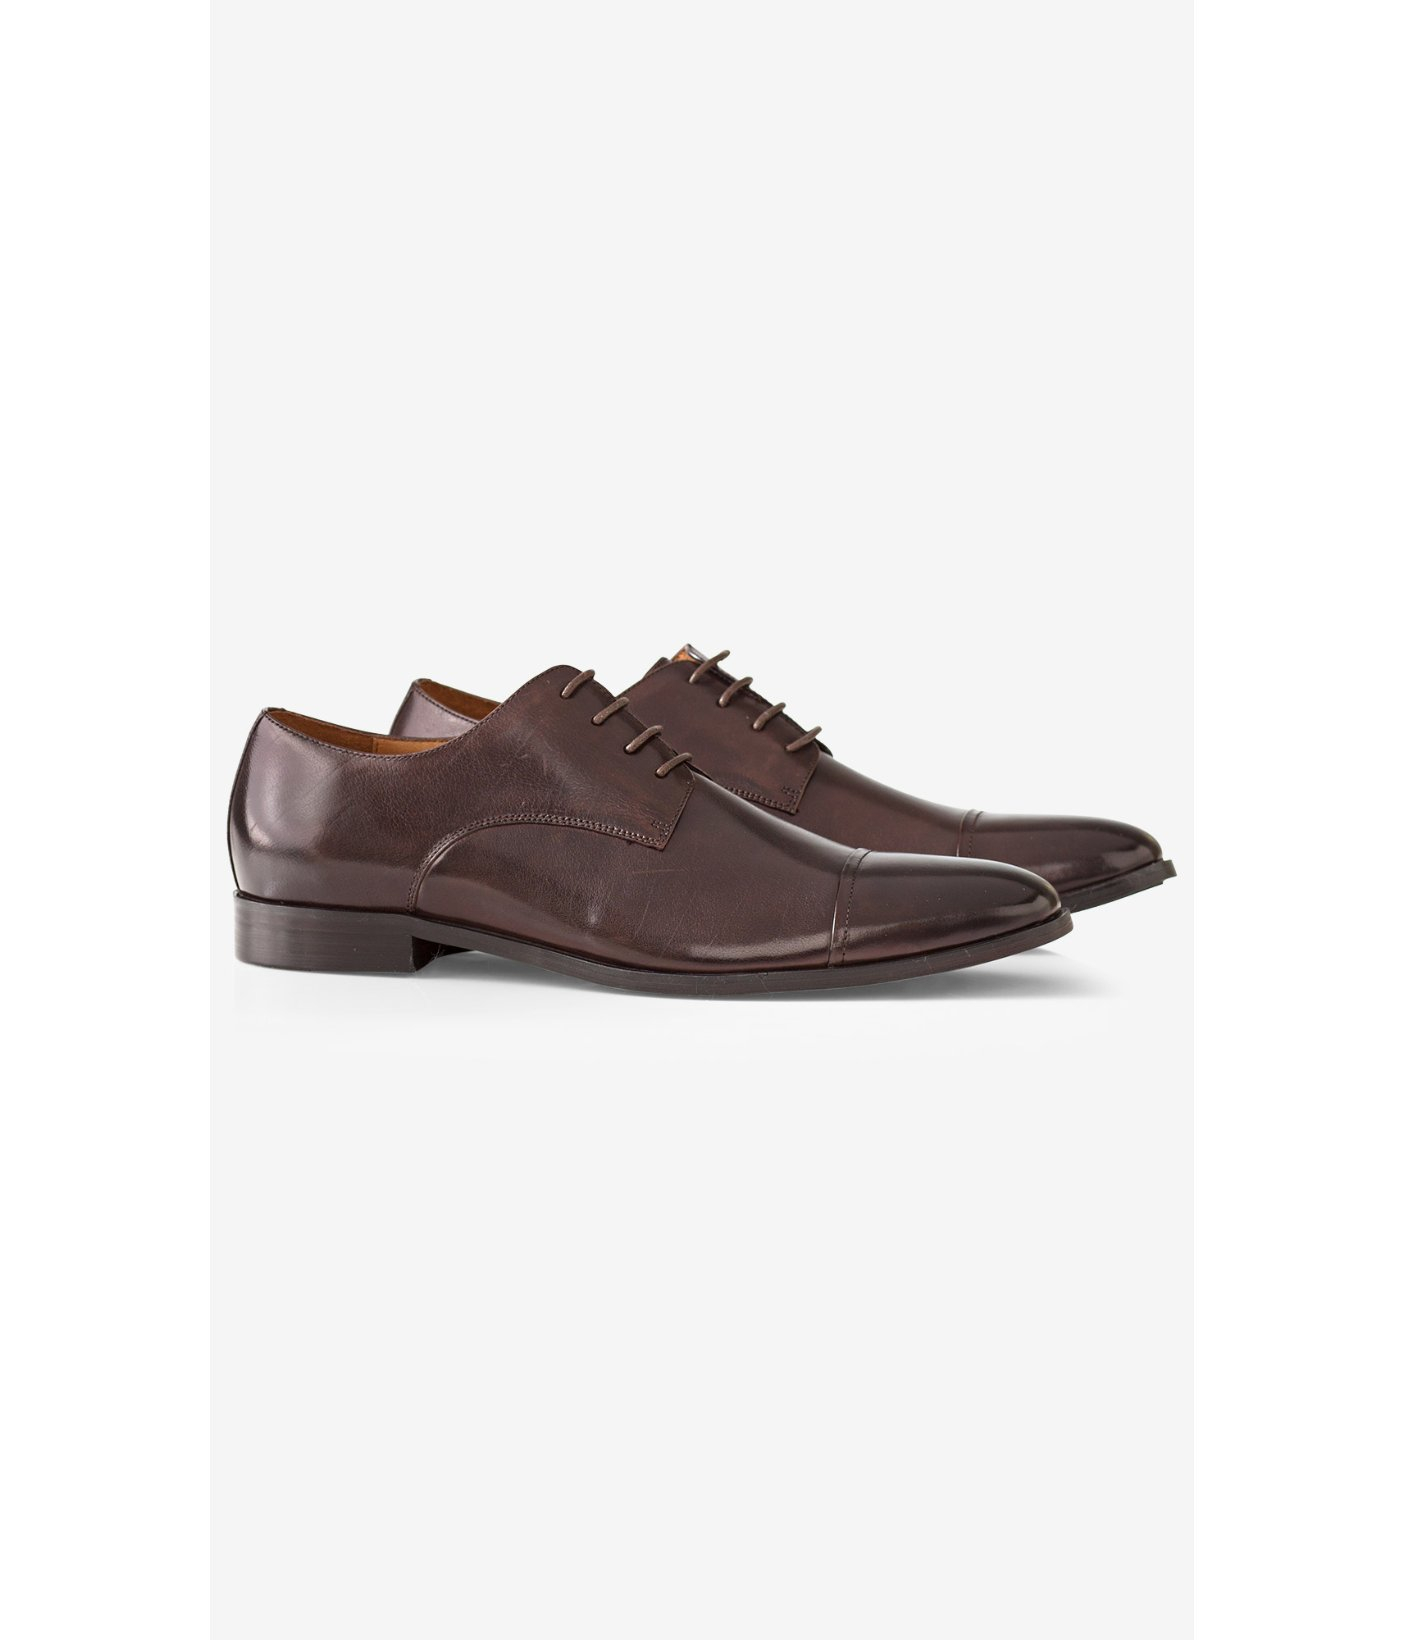 express leather cap toe oxford in brown for lyst